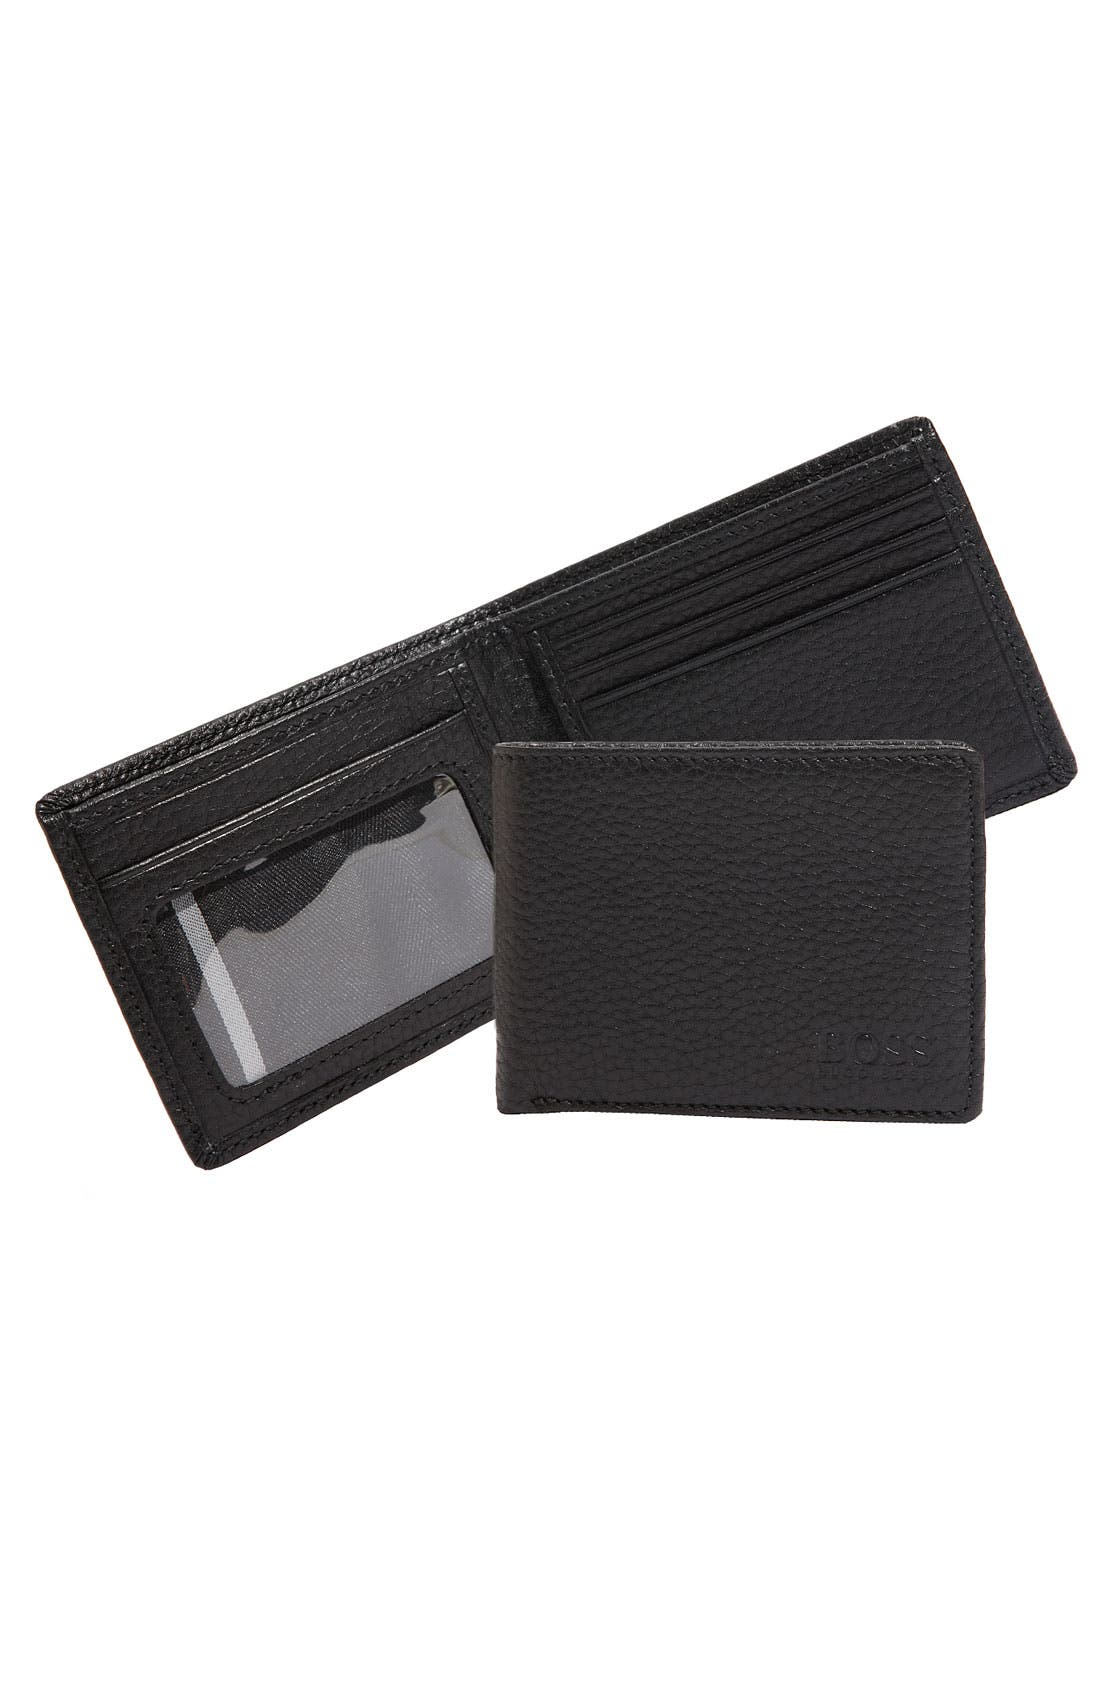 Main Image - BOSS Leather Bifold Wallet with ID Window